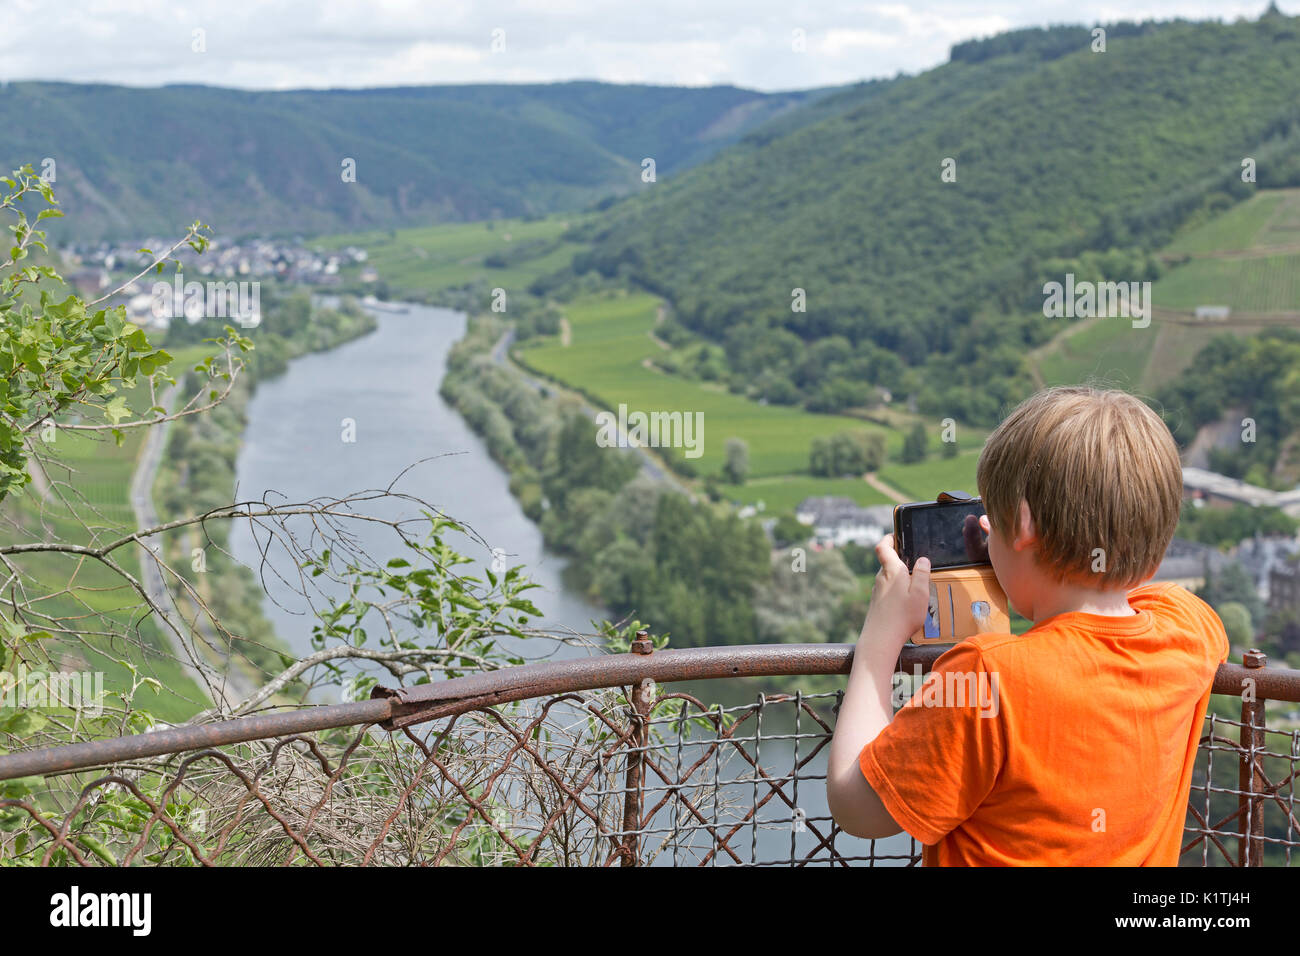 view of Valwig and Ernst from a viewpoint near Cochem, Moselle, Rhineland-Palatinate, Germany - Stock Image